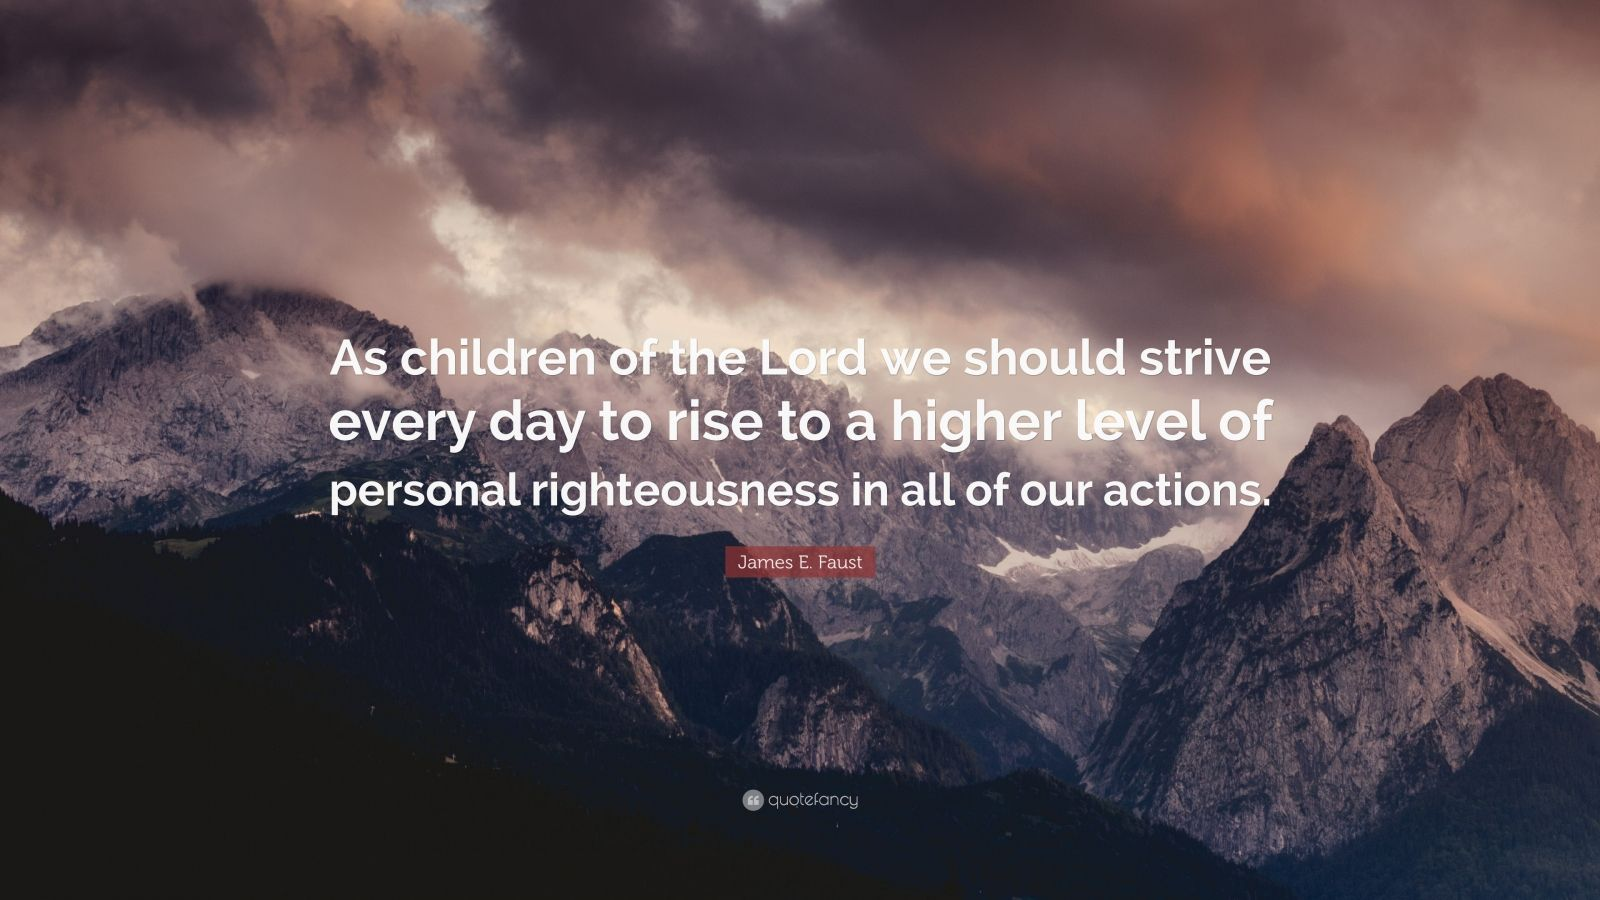 """James E. Faust Quote: """"As children of the Lord we should strive every day to rise to a higher level of personal righteousness in all of our actions."""""""